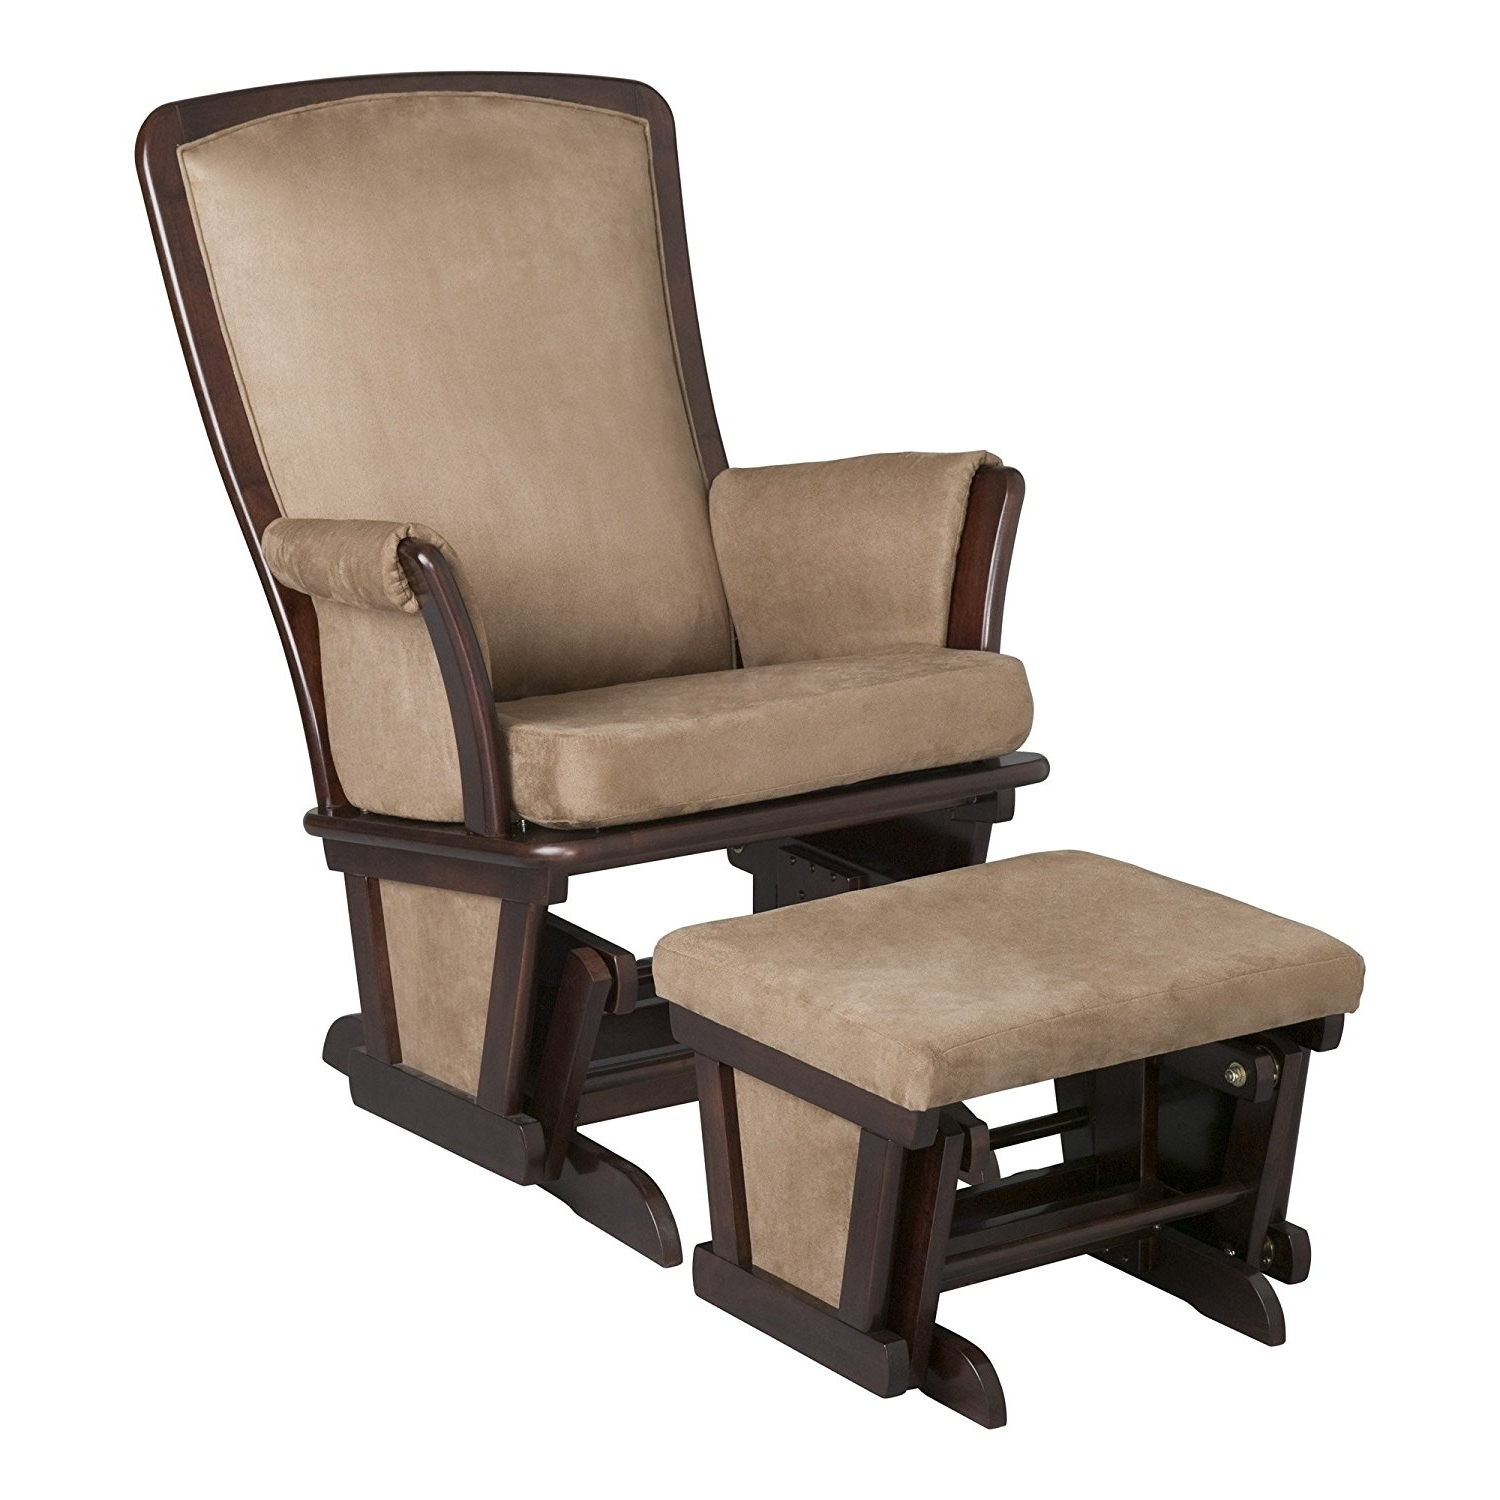 Wicker Rocking Chair High Back Upholstered Rocking Chair (View 15 of 15)